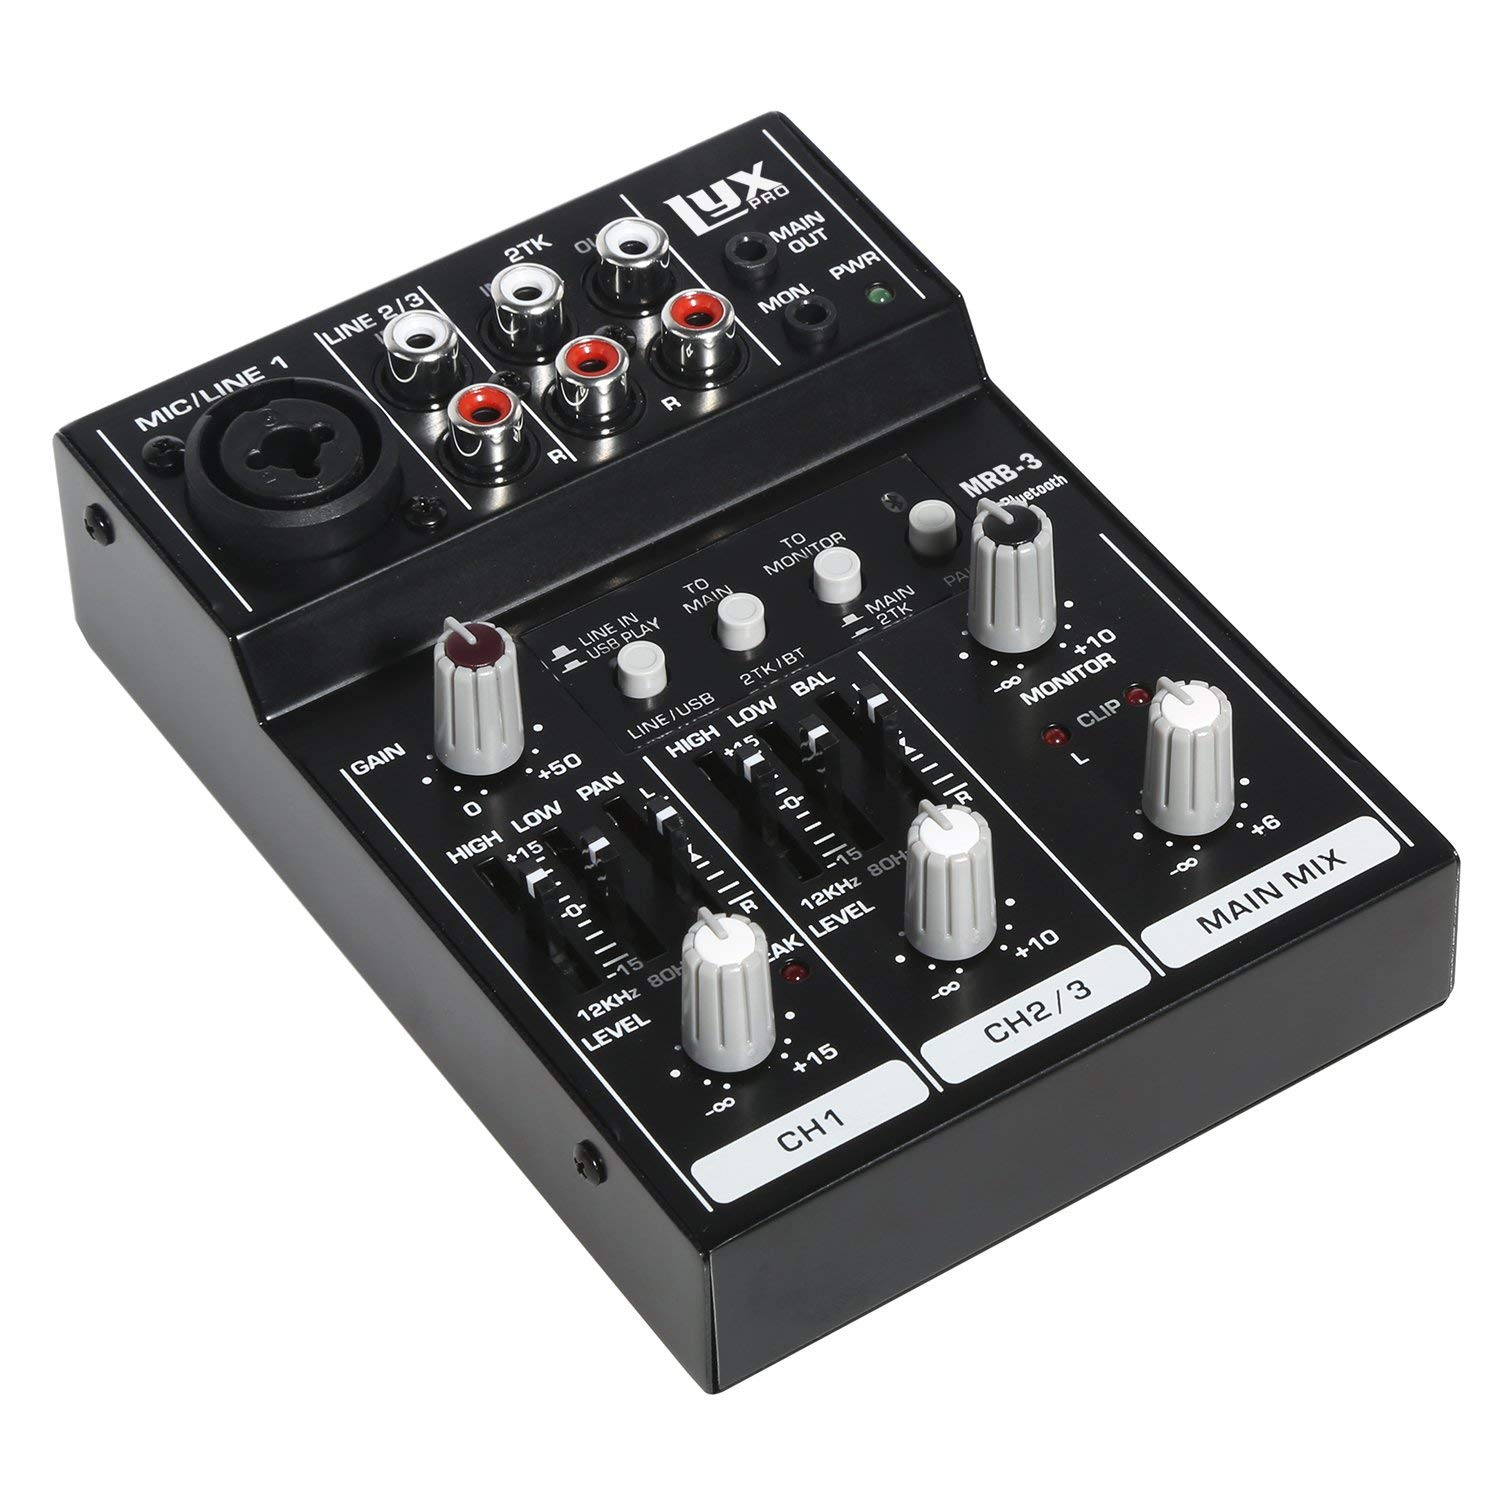 LyxPro MRB3 3-Channel Audio Mixer - Flexible, Compact Personal Pro Audio Mixer with USB & Bluetooth Connections (Renewed)